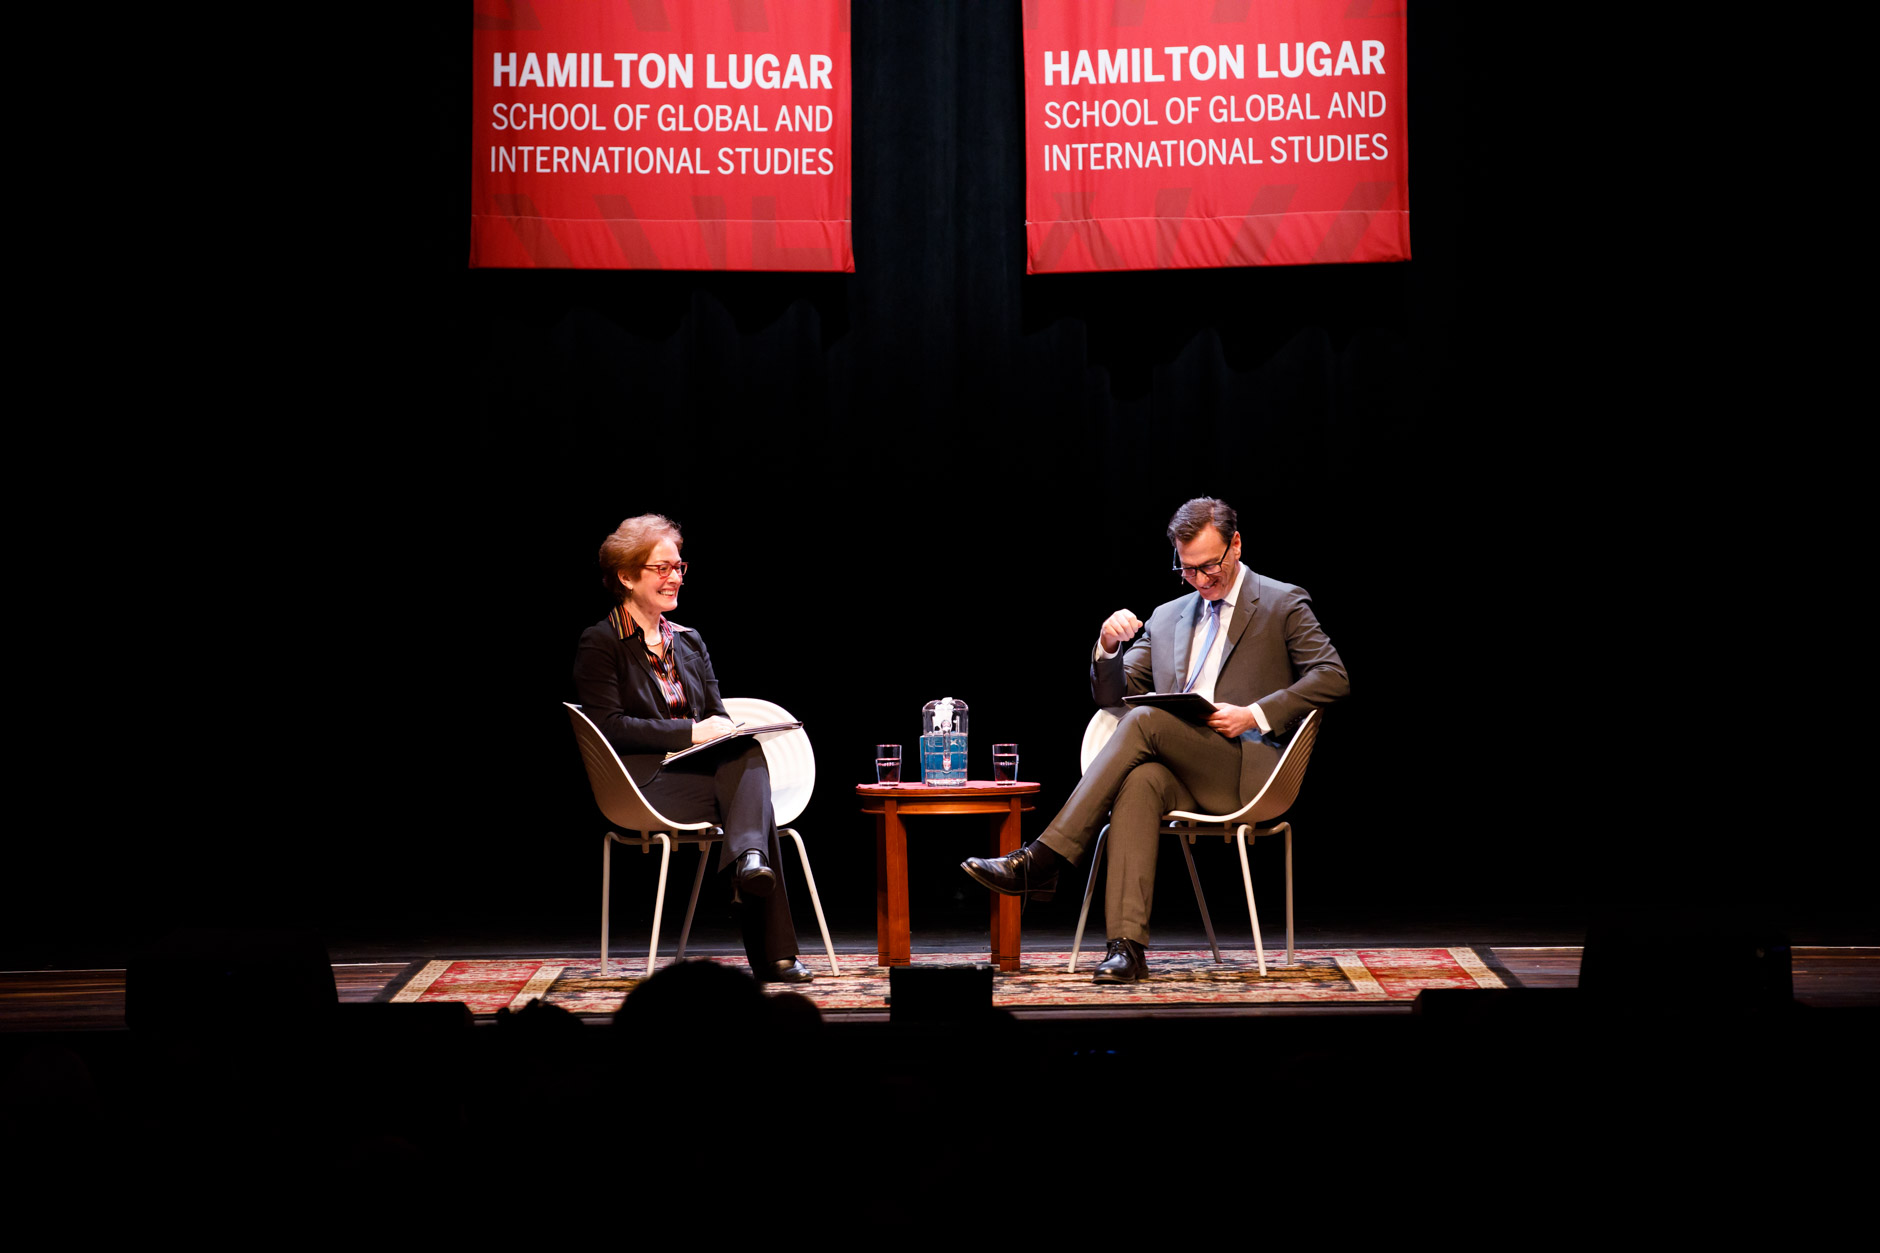 Former U.S. Ambassador to Ukraine Marie Yovanovitch speaks with Indiana University Hamilton Lugar School of Global and International Studies Dean Lee A. Feinstein during the America's Role in the World Conference at IU Bloomington on Friday, March 6, 2020. (James Brosher/Indiana University)